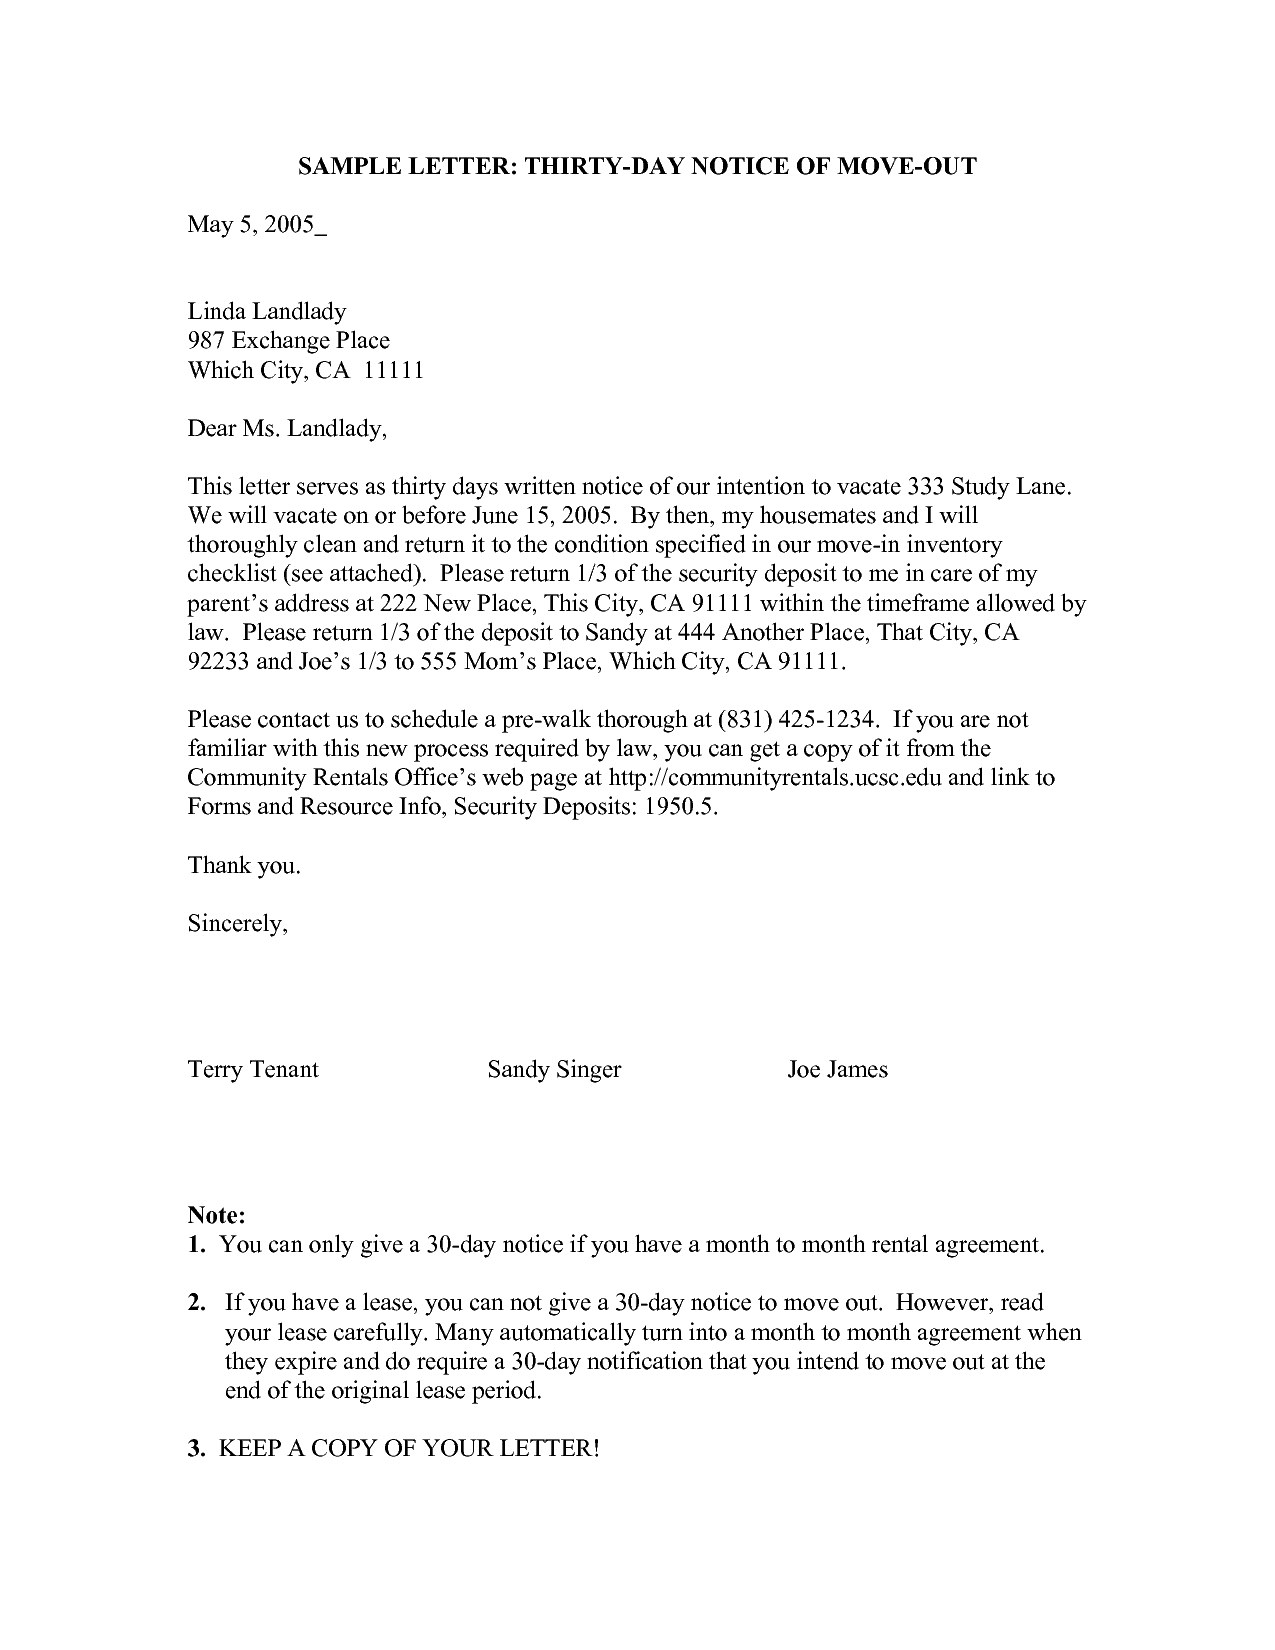 30 day moving notice letters